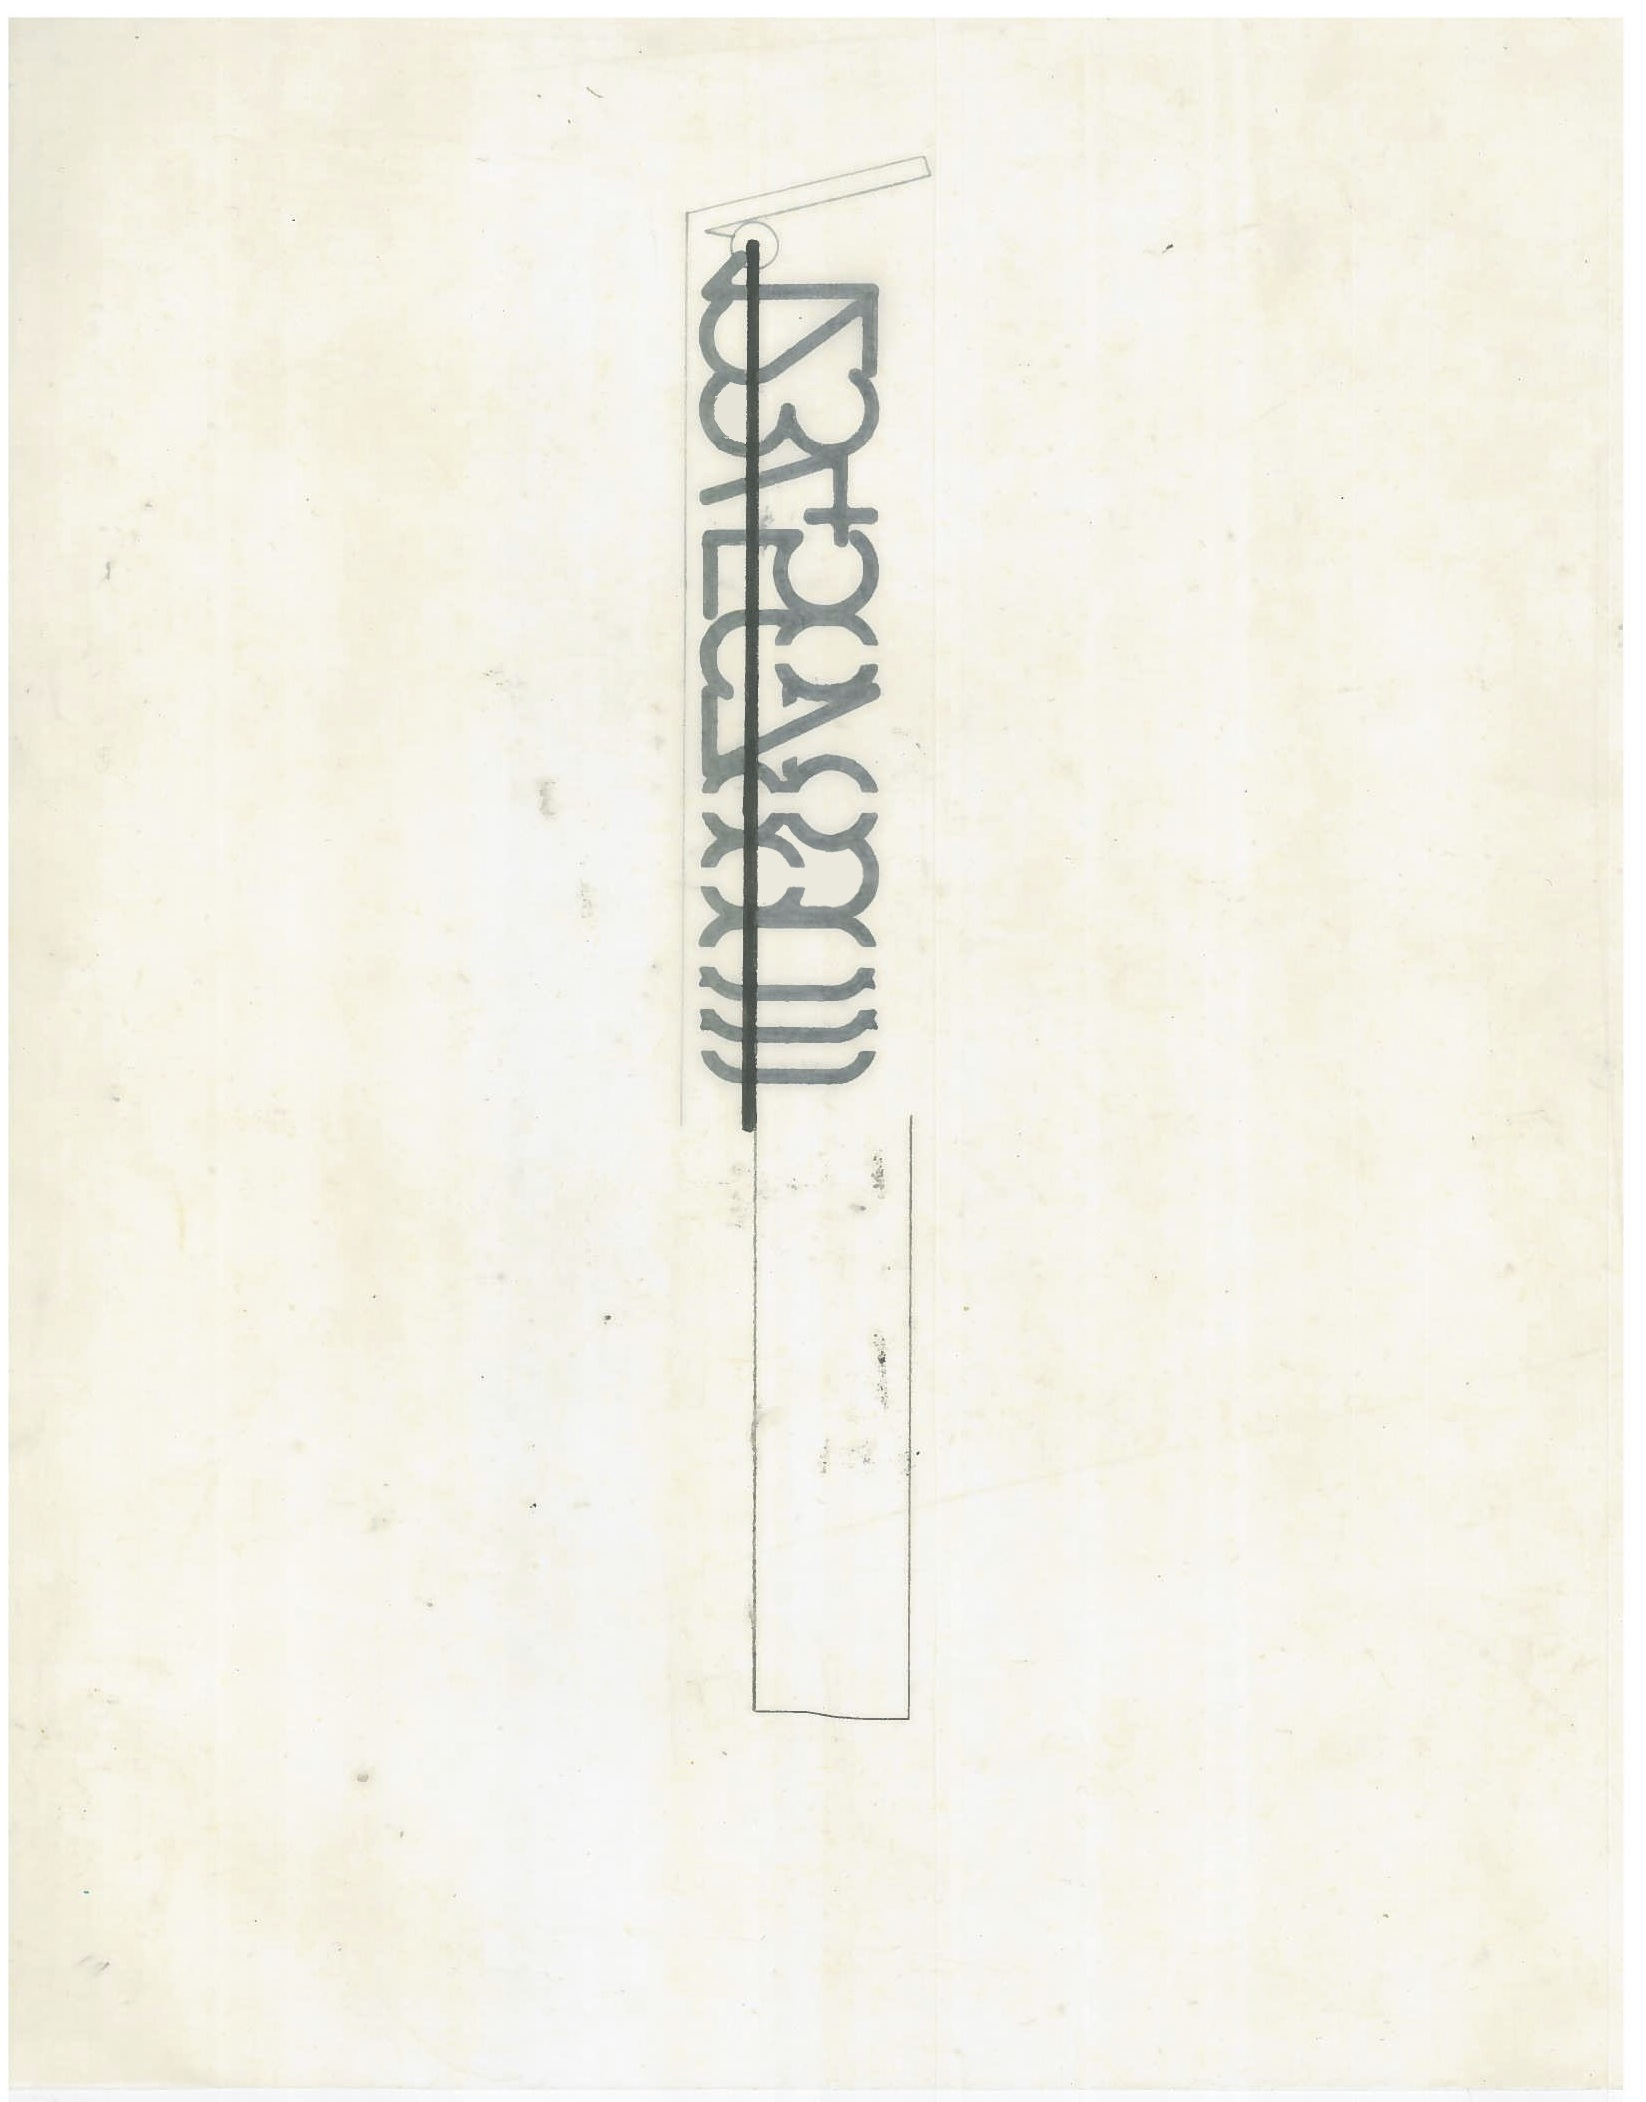 Untitled (the city, observations 23A)  Pencil on oiled fabriano paper  279mm x 216mm  December 2013